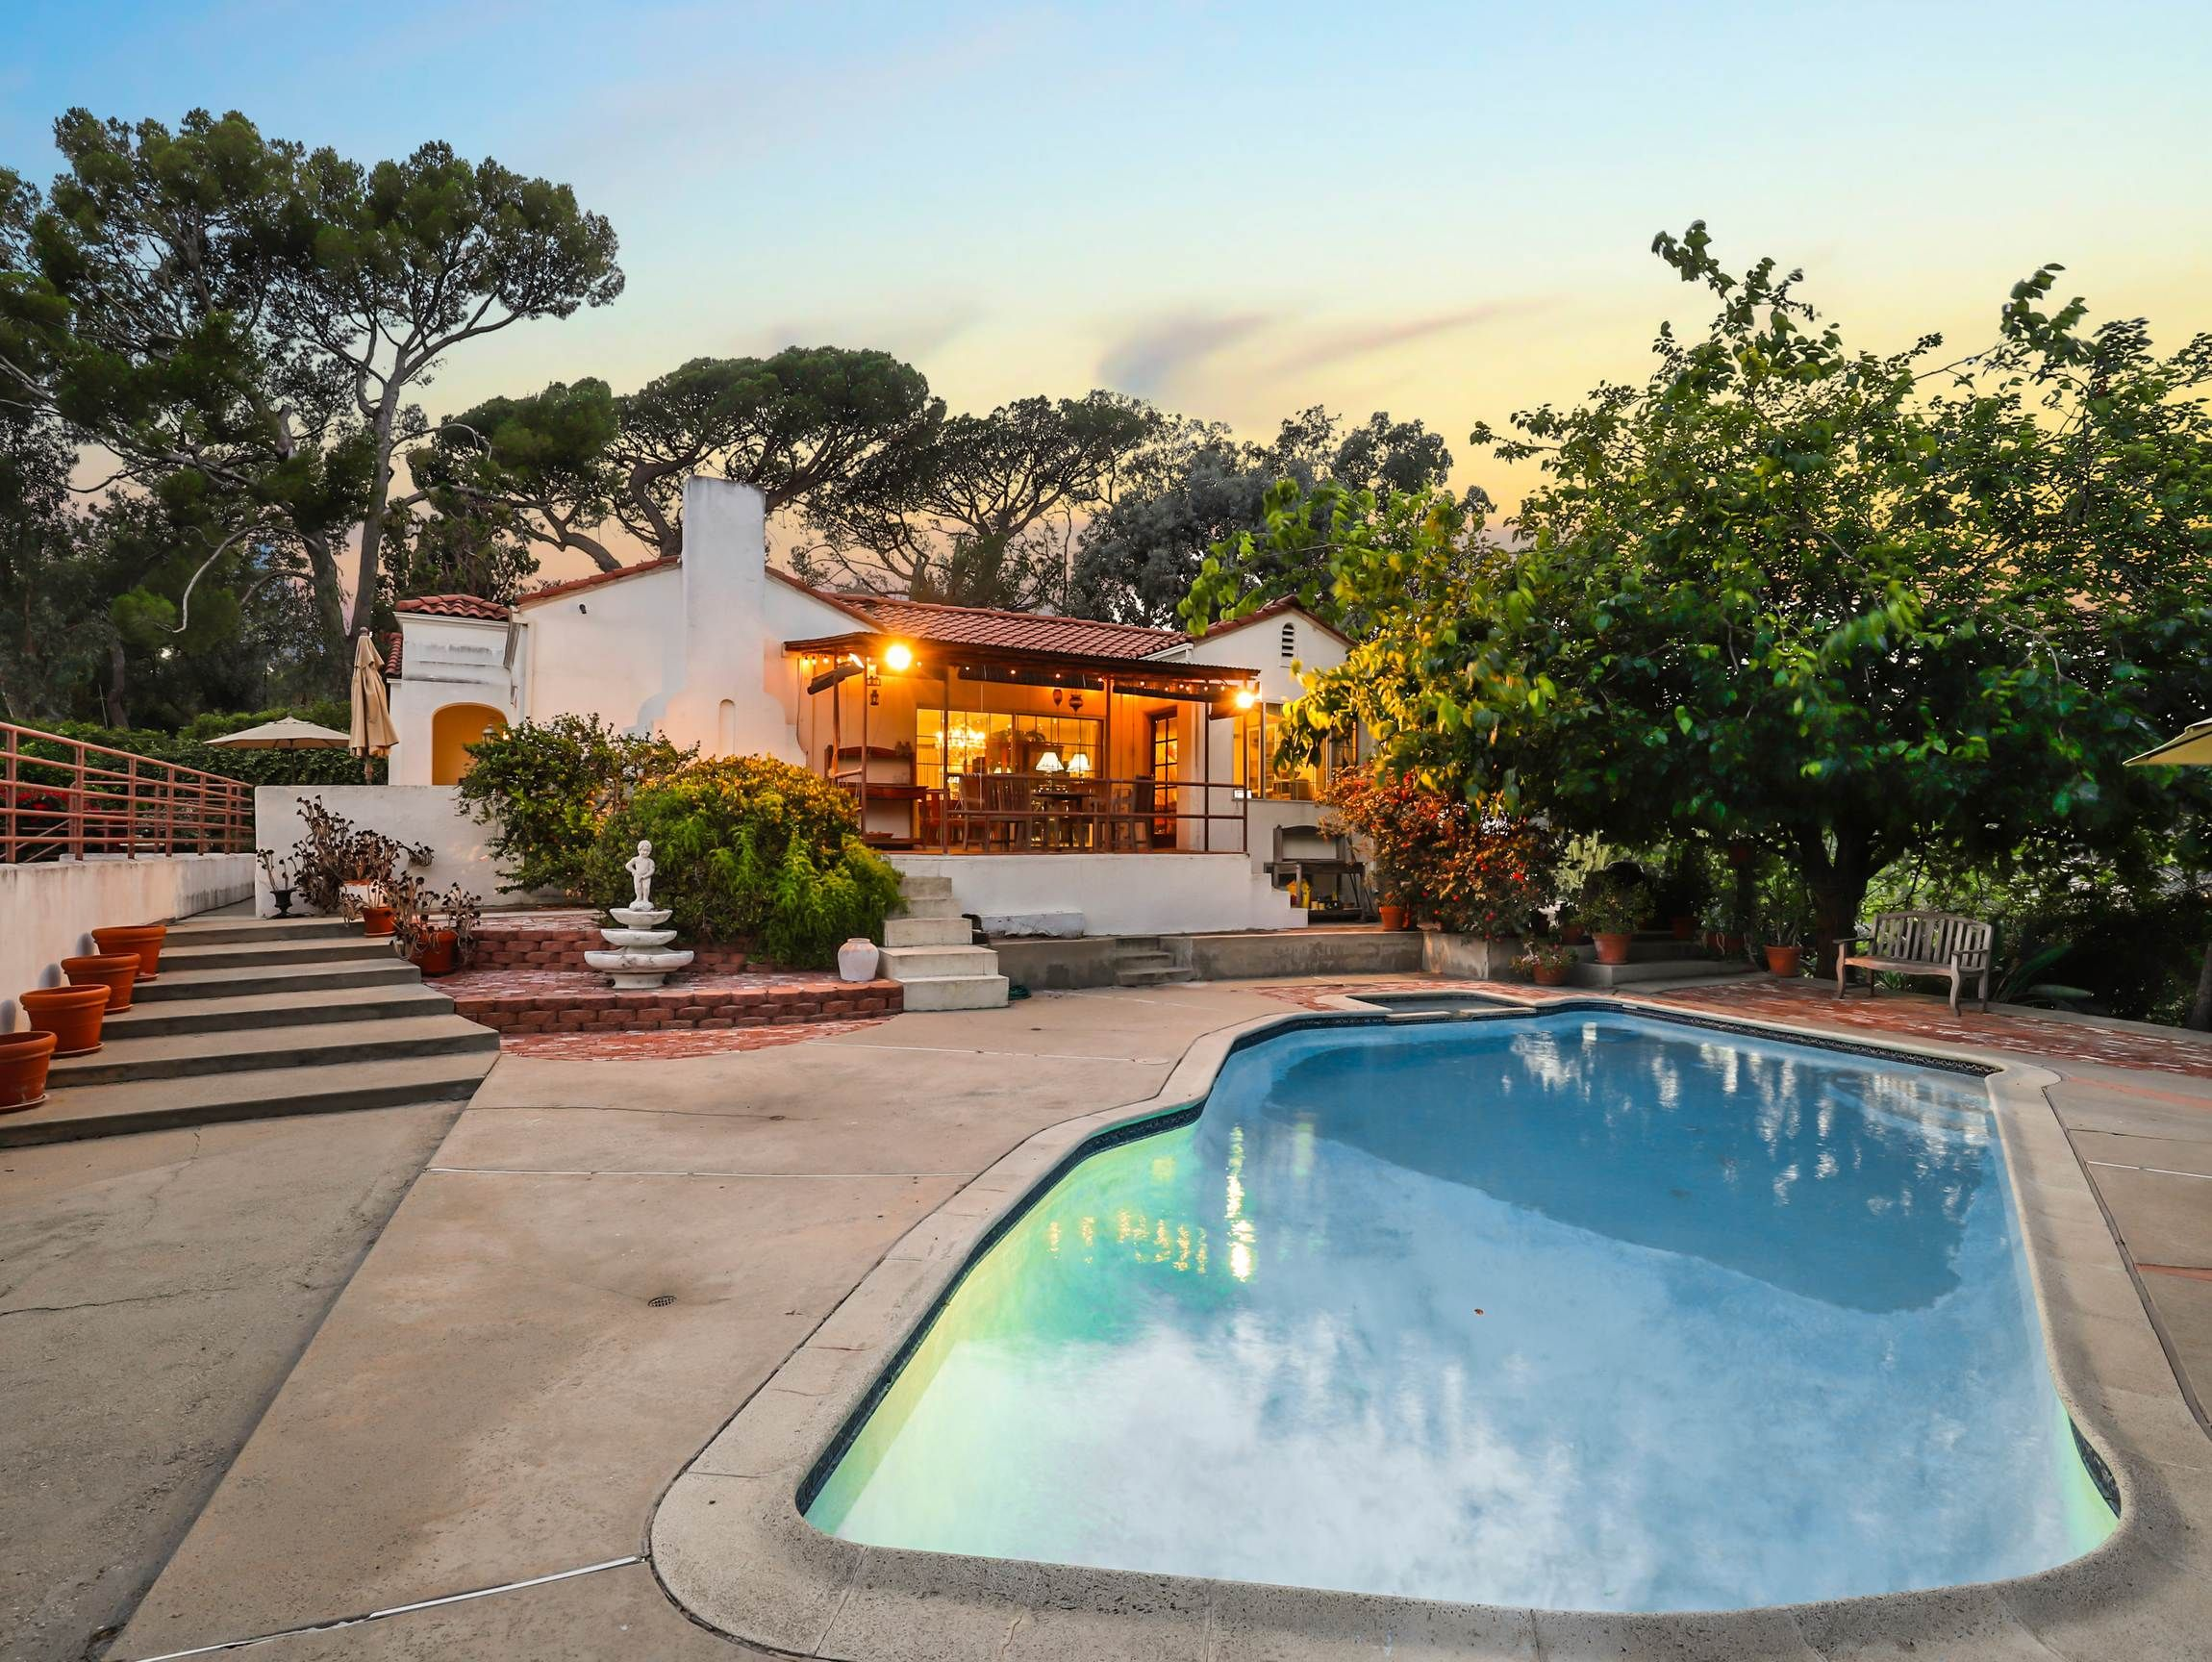 This California House Has a Dark History with Charles Manson's Cult—And It's For Sale